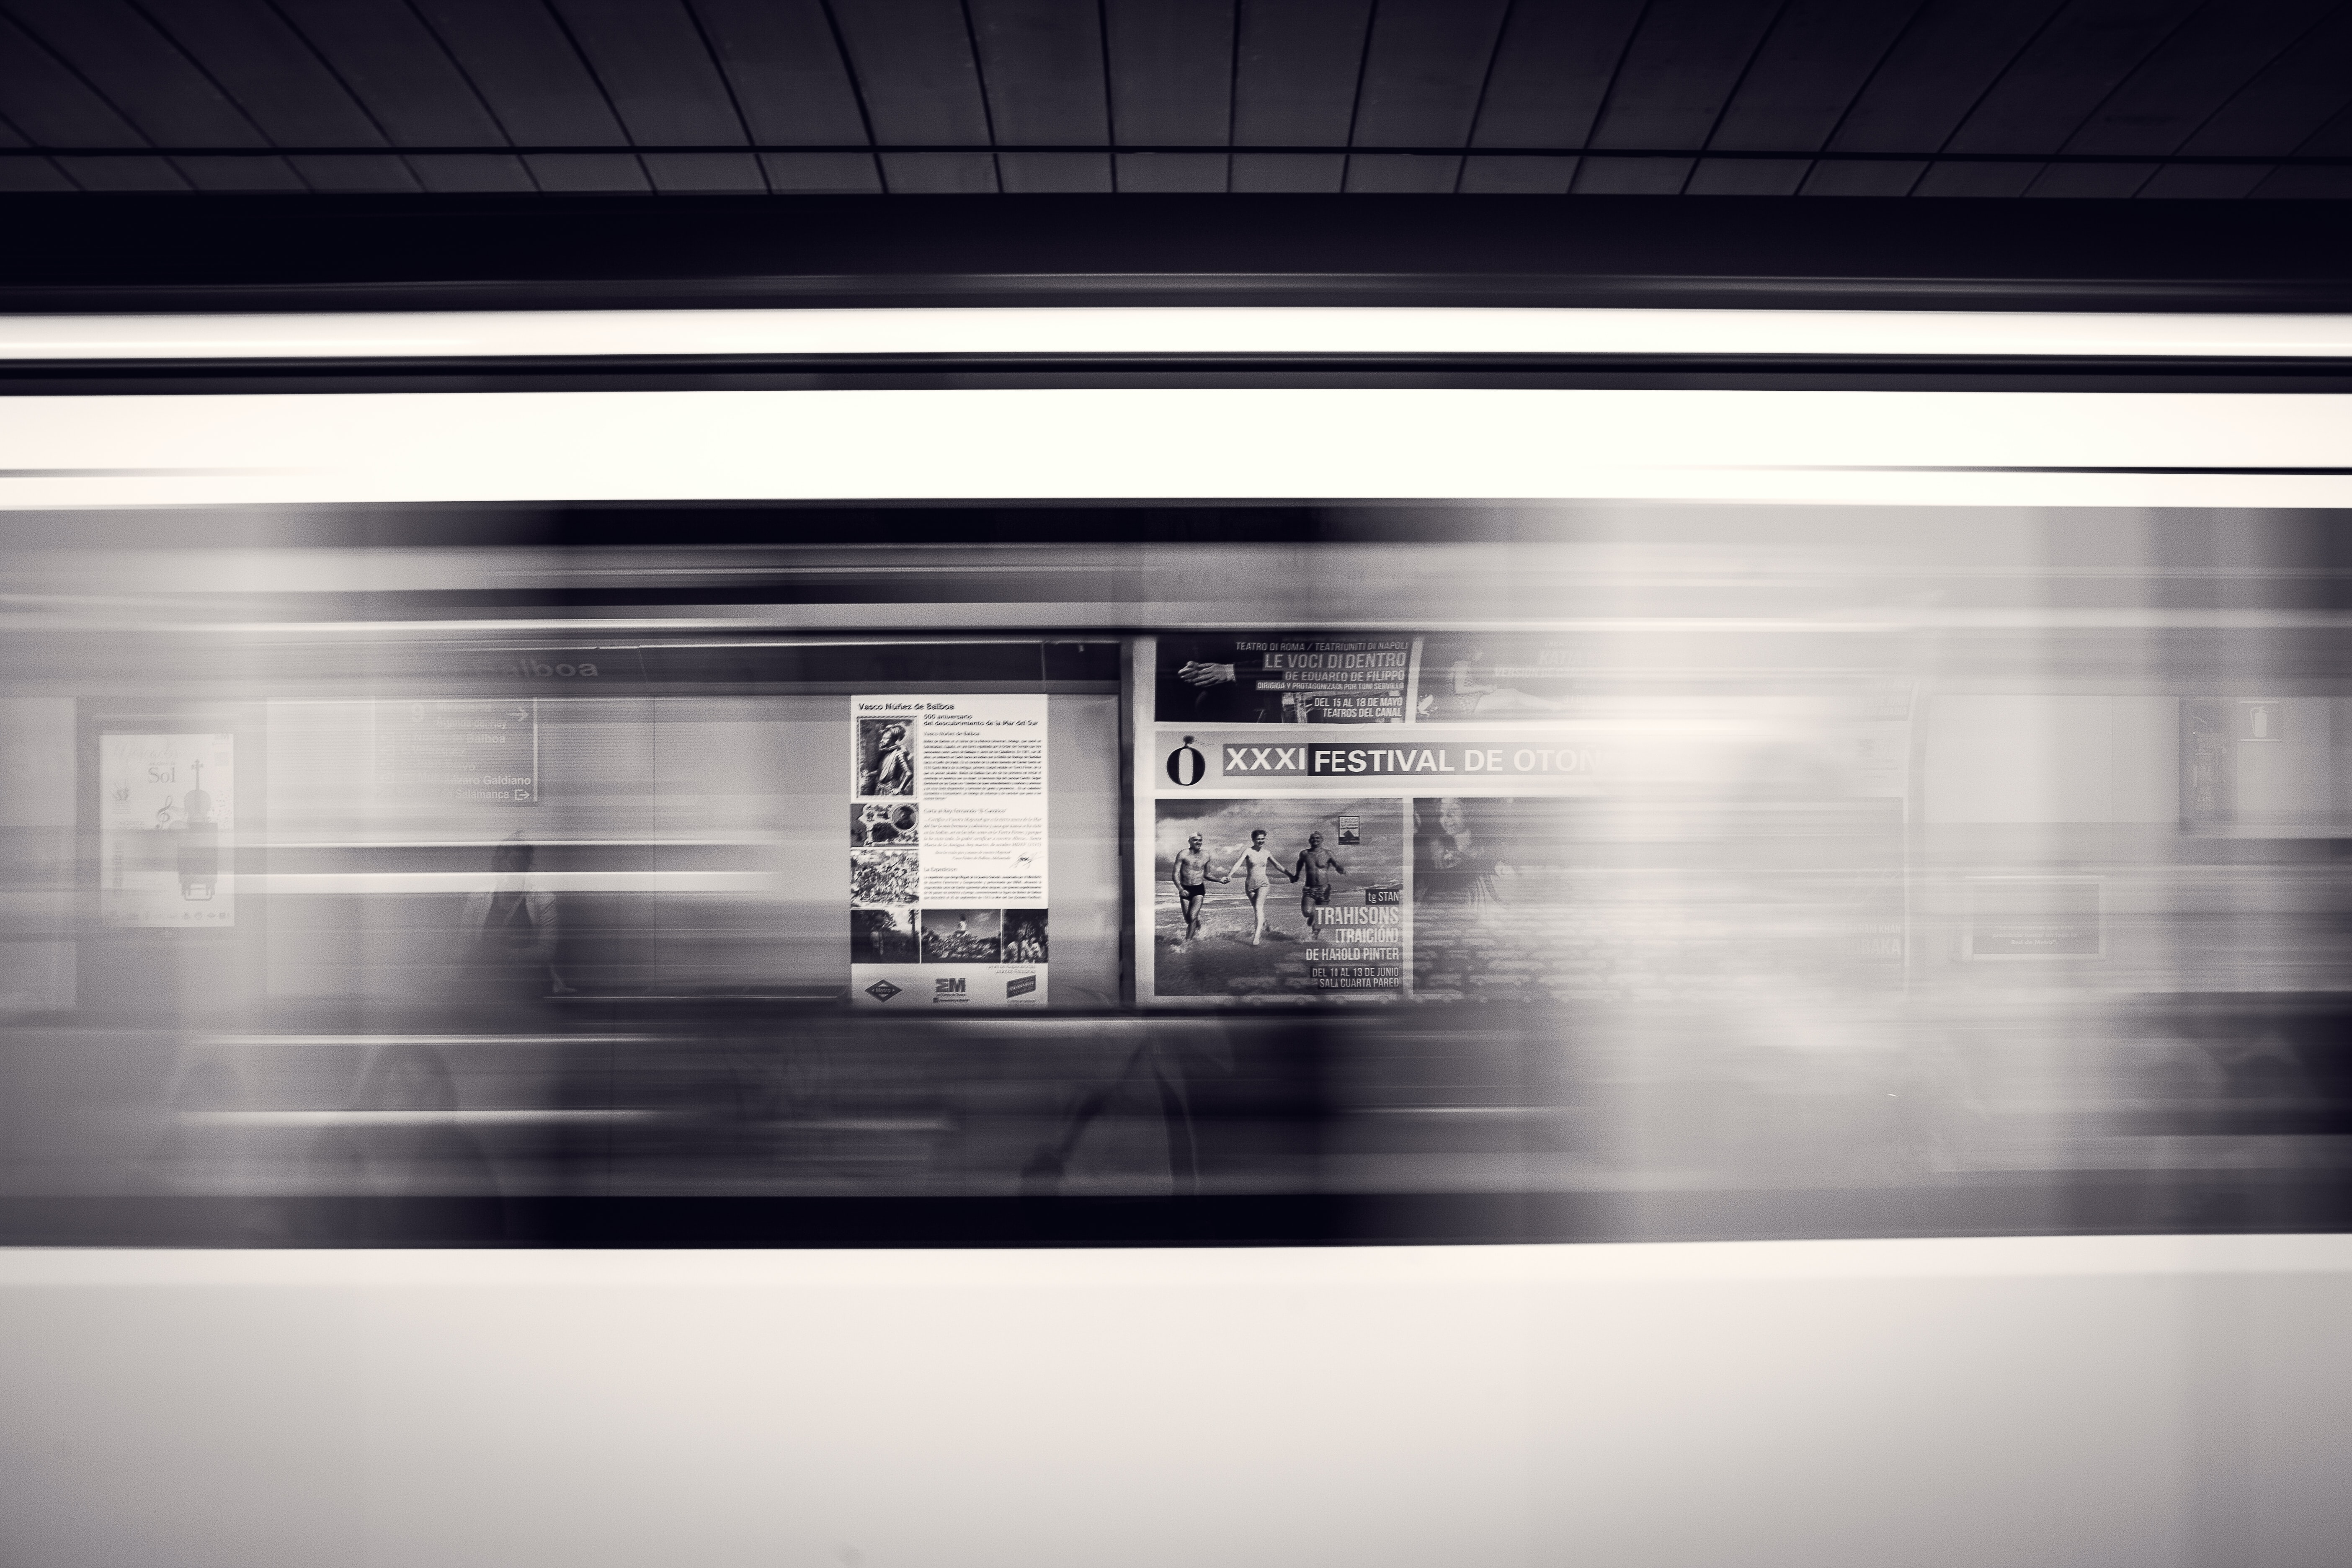 A long-exposure shot of a moving subway train and advertisement posters at the station